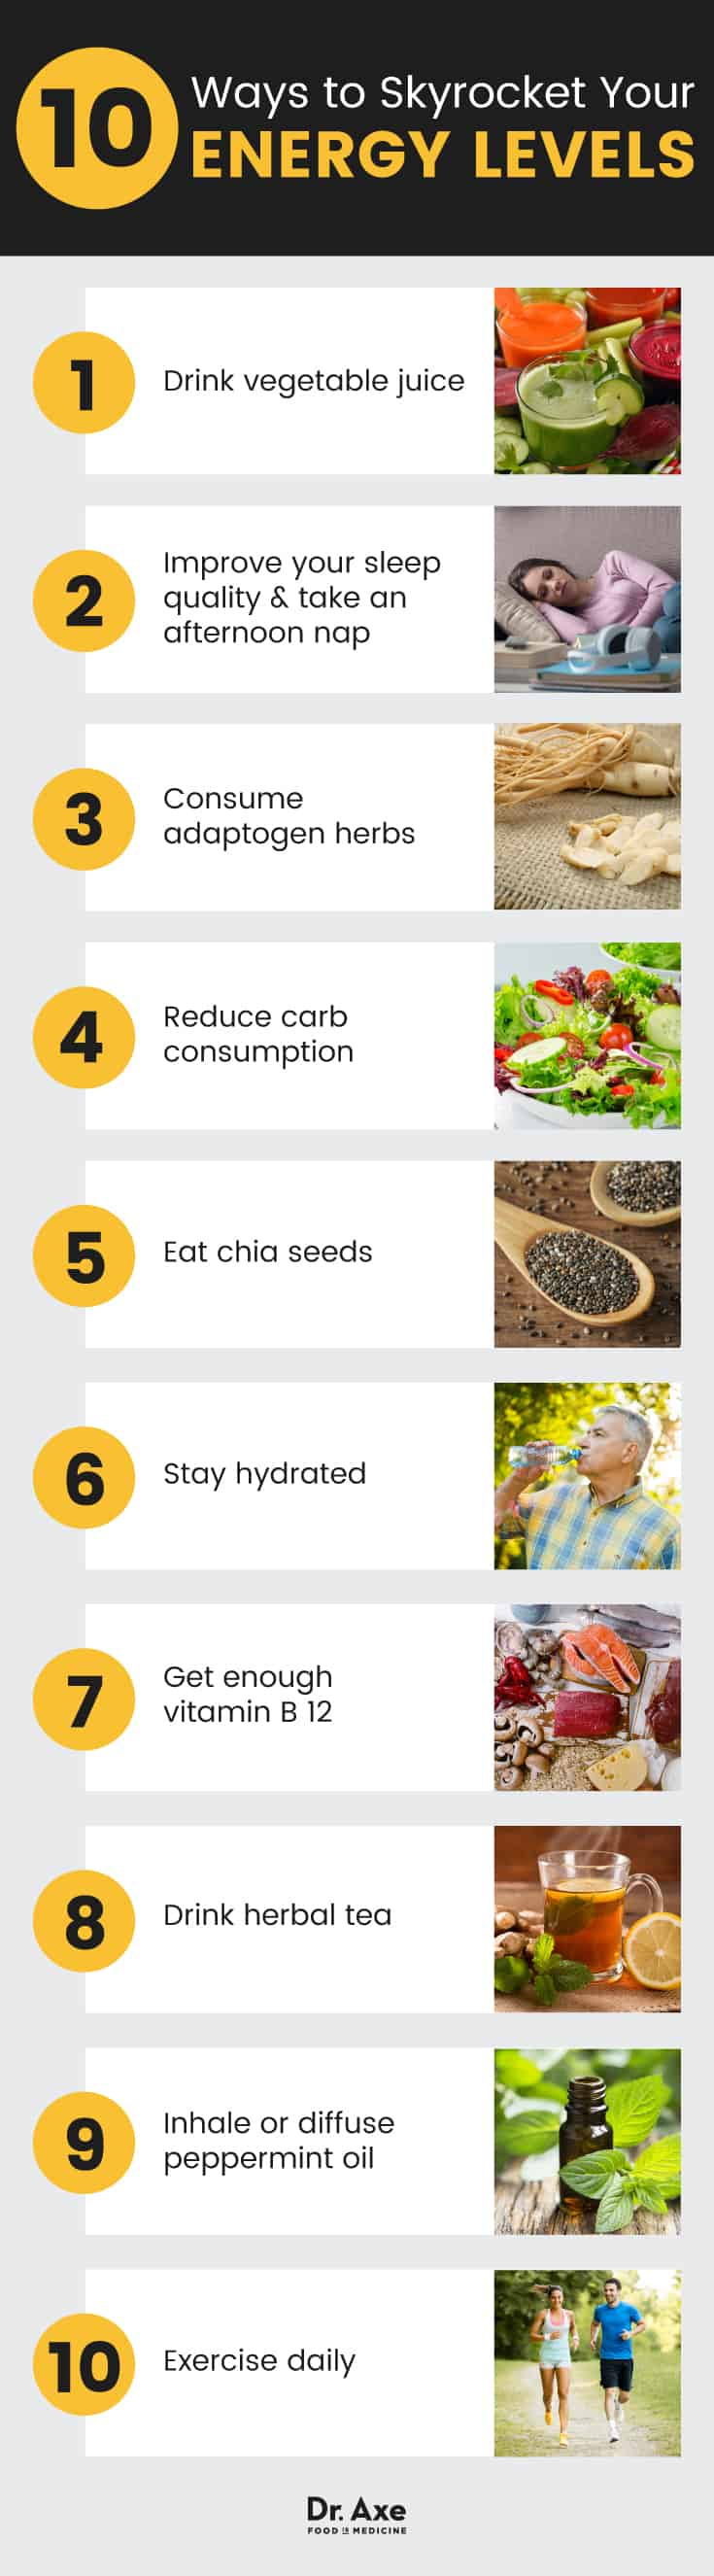 Exhausted? 10 ways to boost energy levels - Dr. Axe